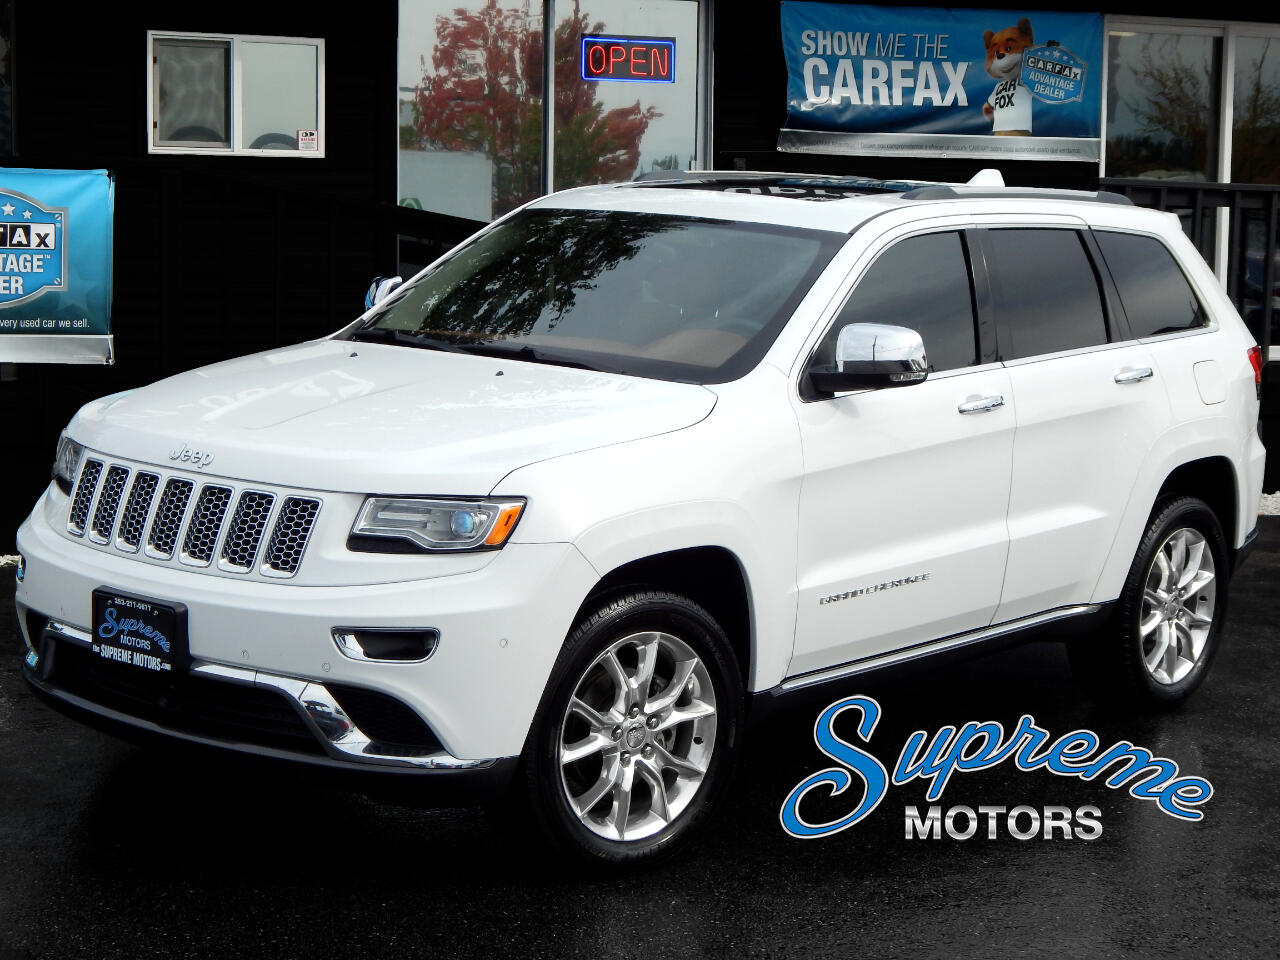 2015 Jeep Grand Cherokee Summit Edition, Laser Cruise Control, West Coast C